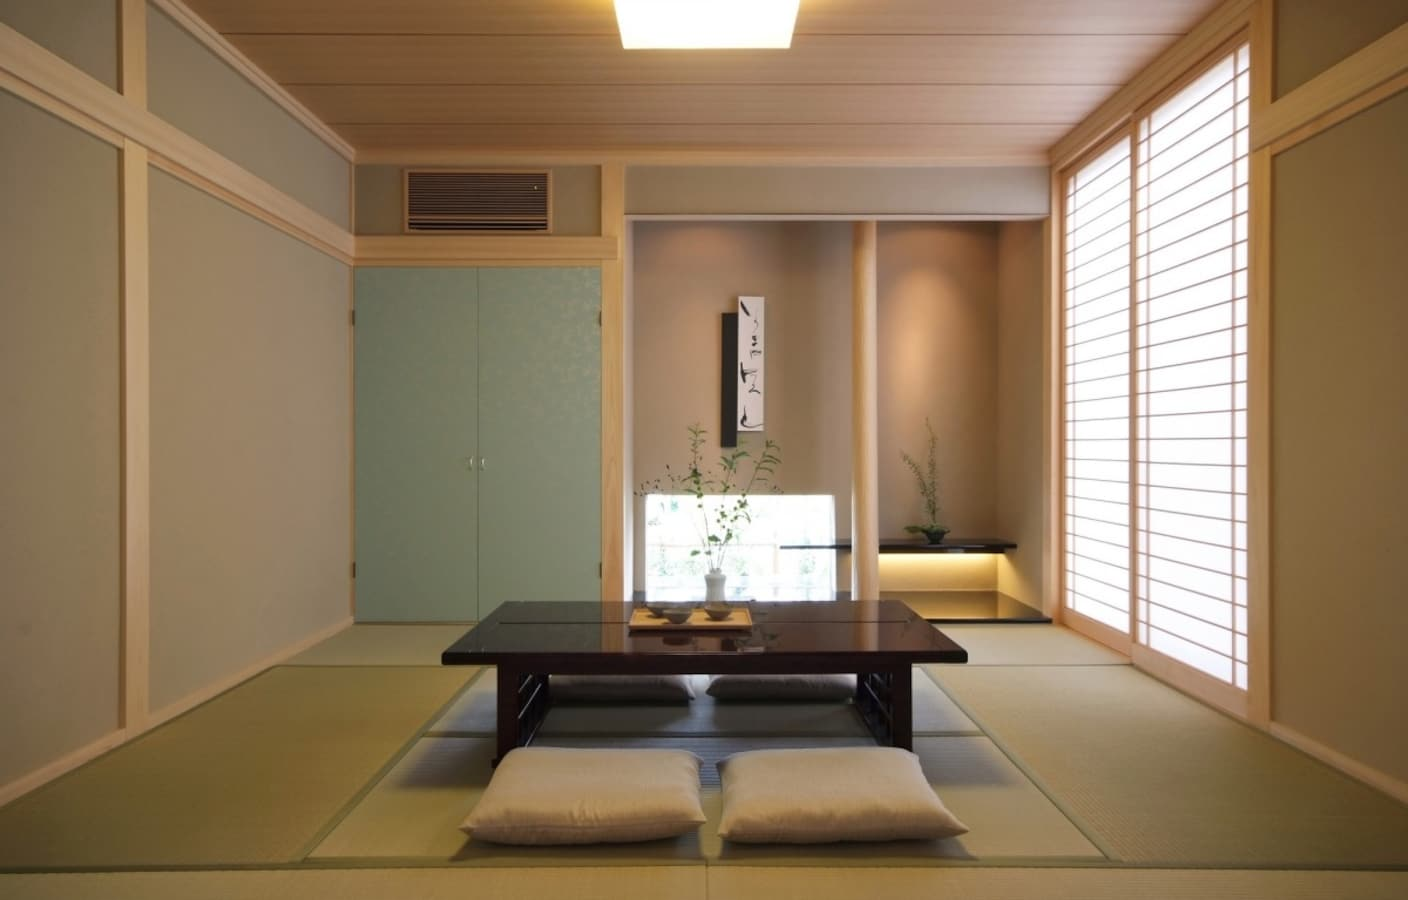 Glean the Secrets of Japanese Interior Design  All About Japan